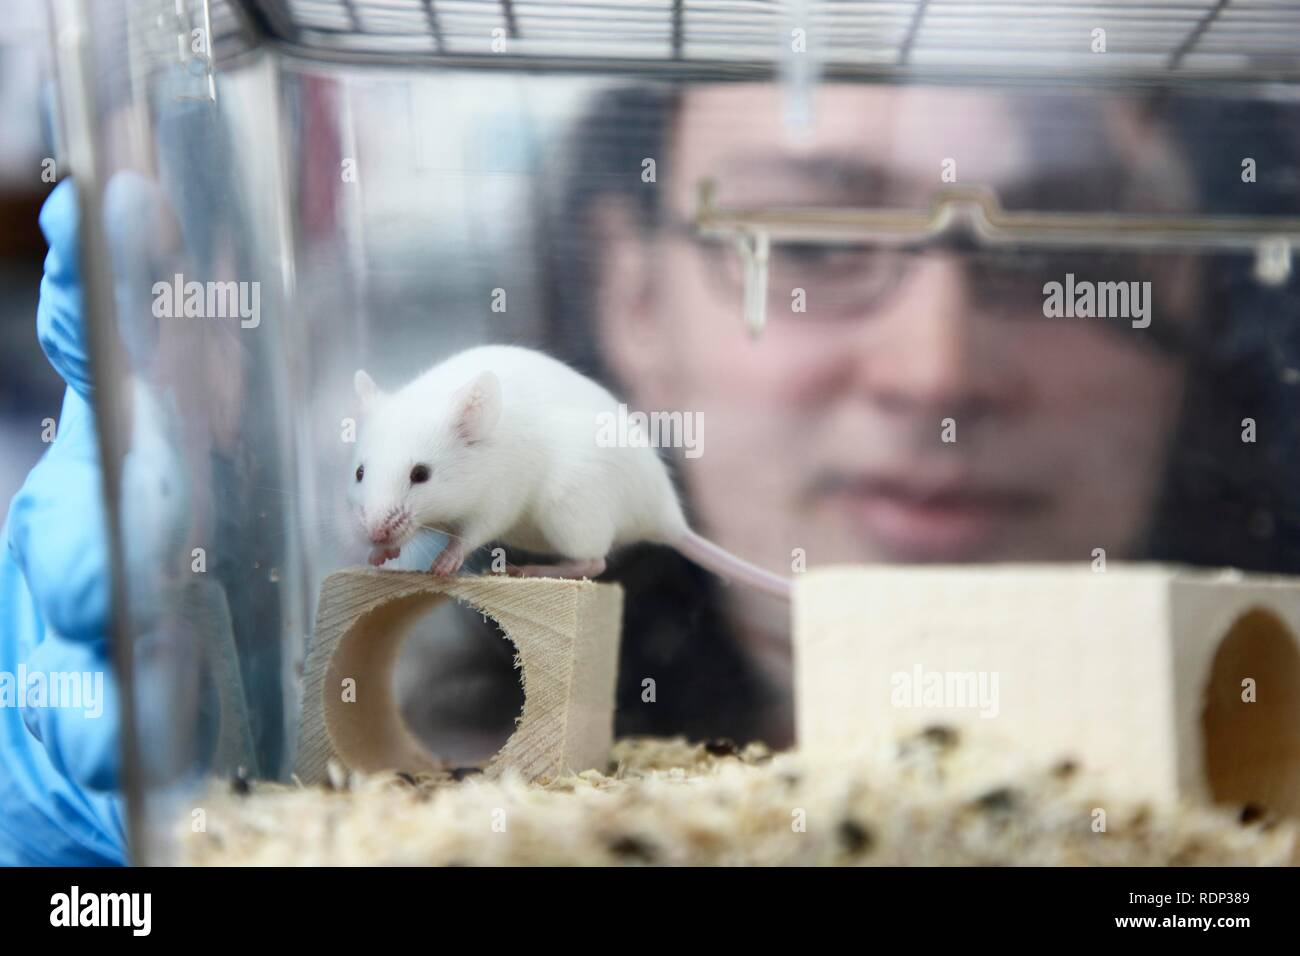 Mouse bred for experimental purposes, Centre for Medical Biotechnology of the University Duisburg-Essen, North Rhine-Westfalia - Stock Image